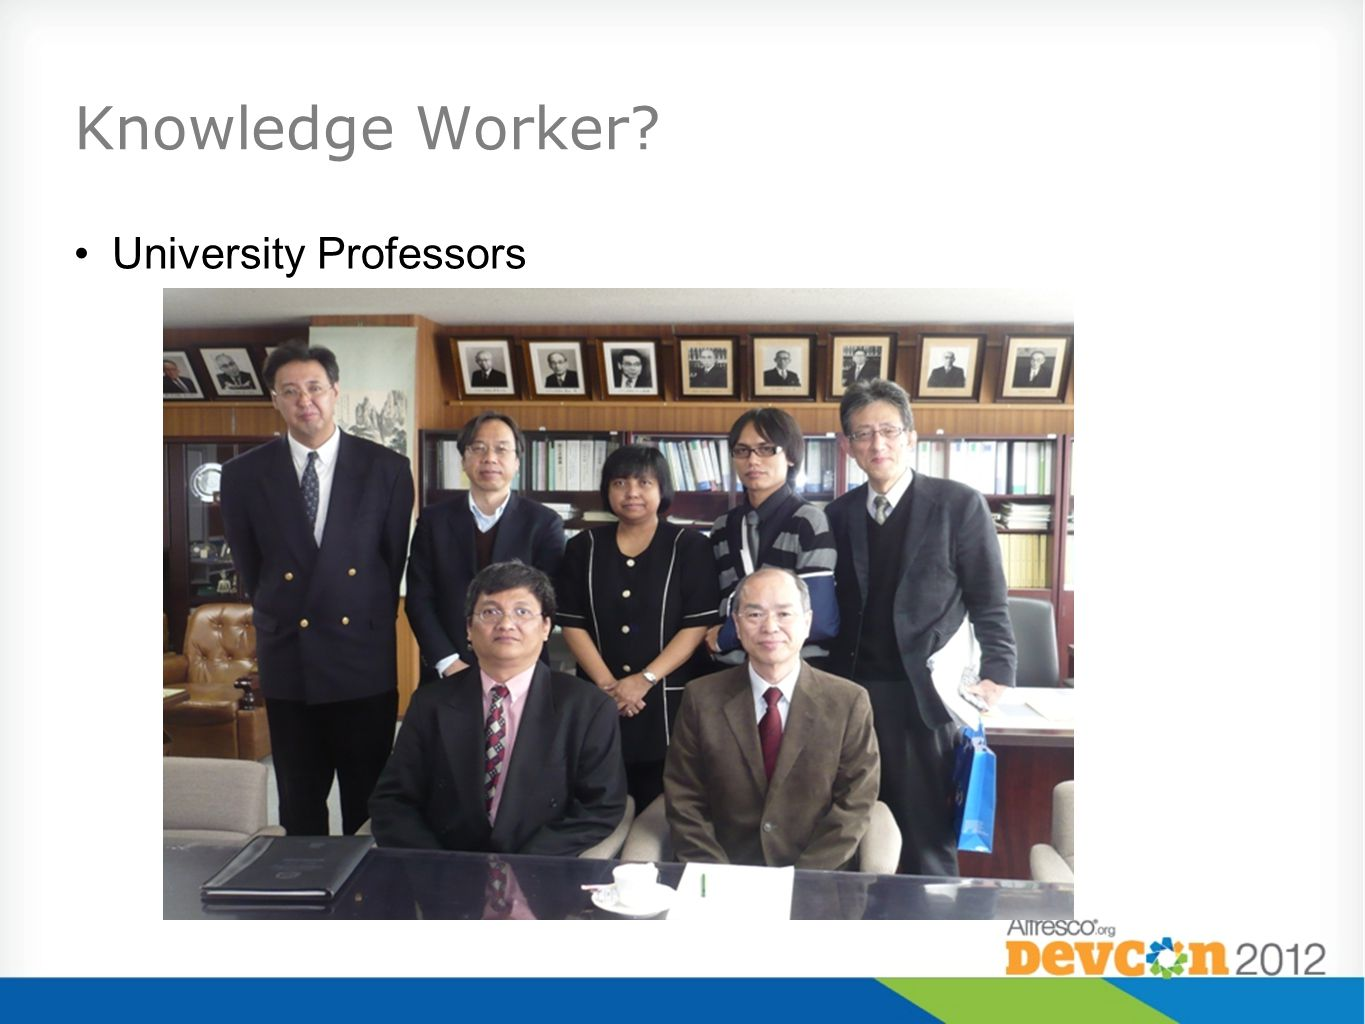 Knowledge Worker? University Professors